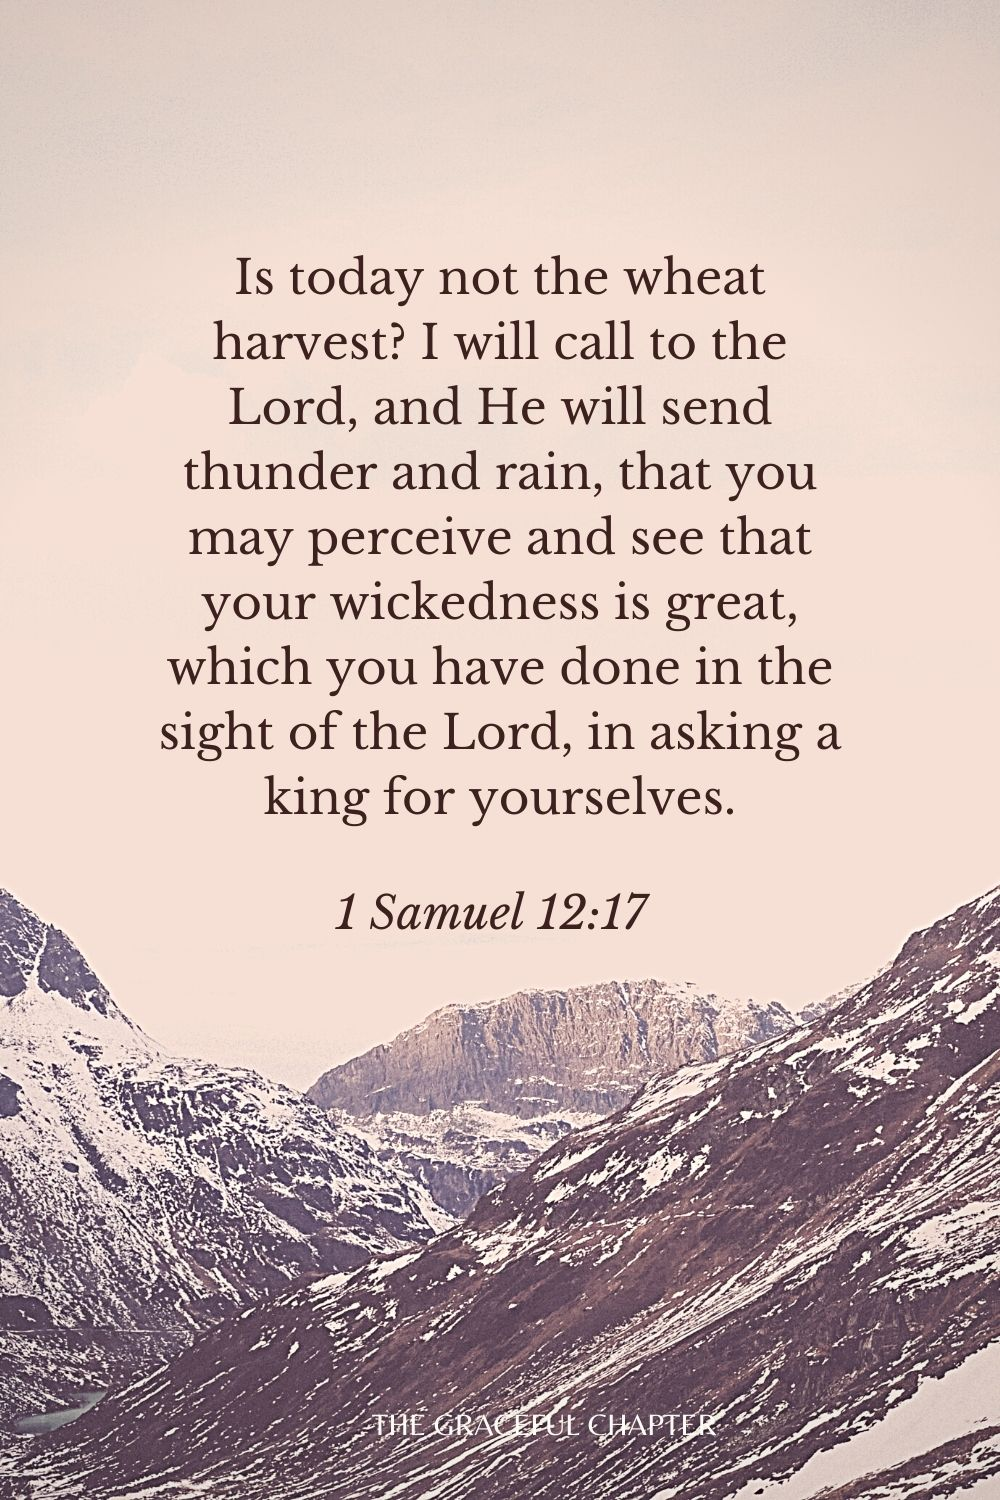 Is today not the wheat harvest? I will call to the Lord, and He will send thunder and rain, that you may perceive and see that your wickedness is great, which you have done in the sight of the Lord, in asking a king for yourselves. 1 Samuel 12:17